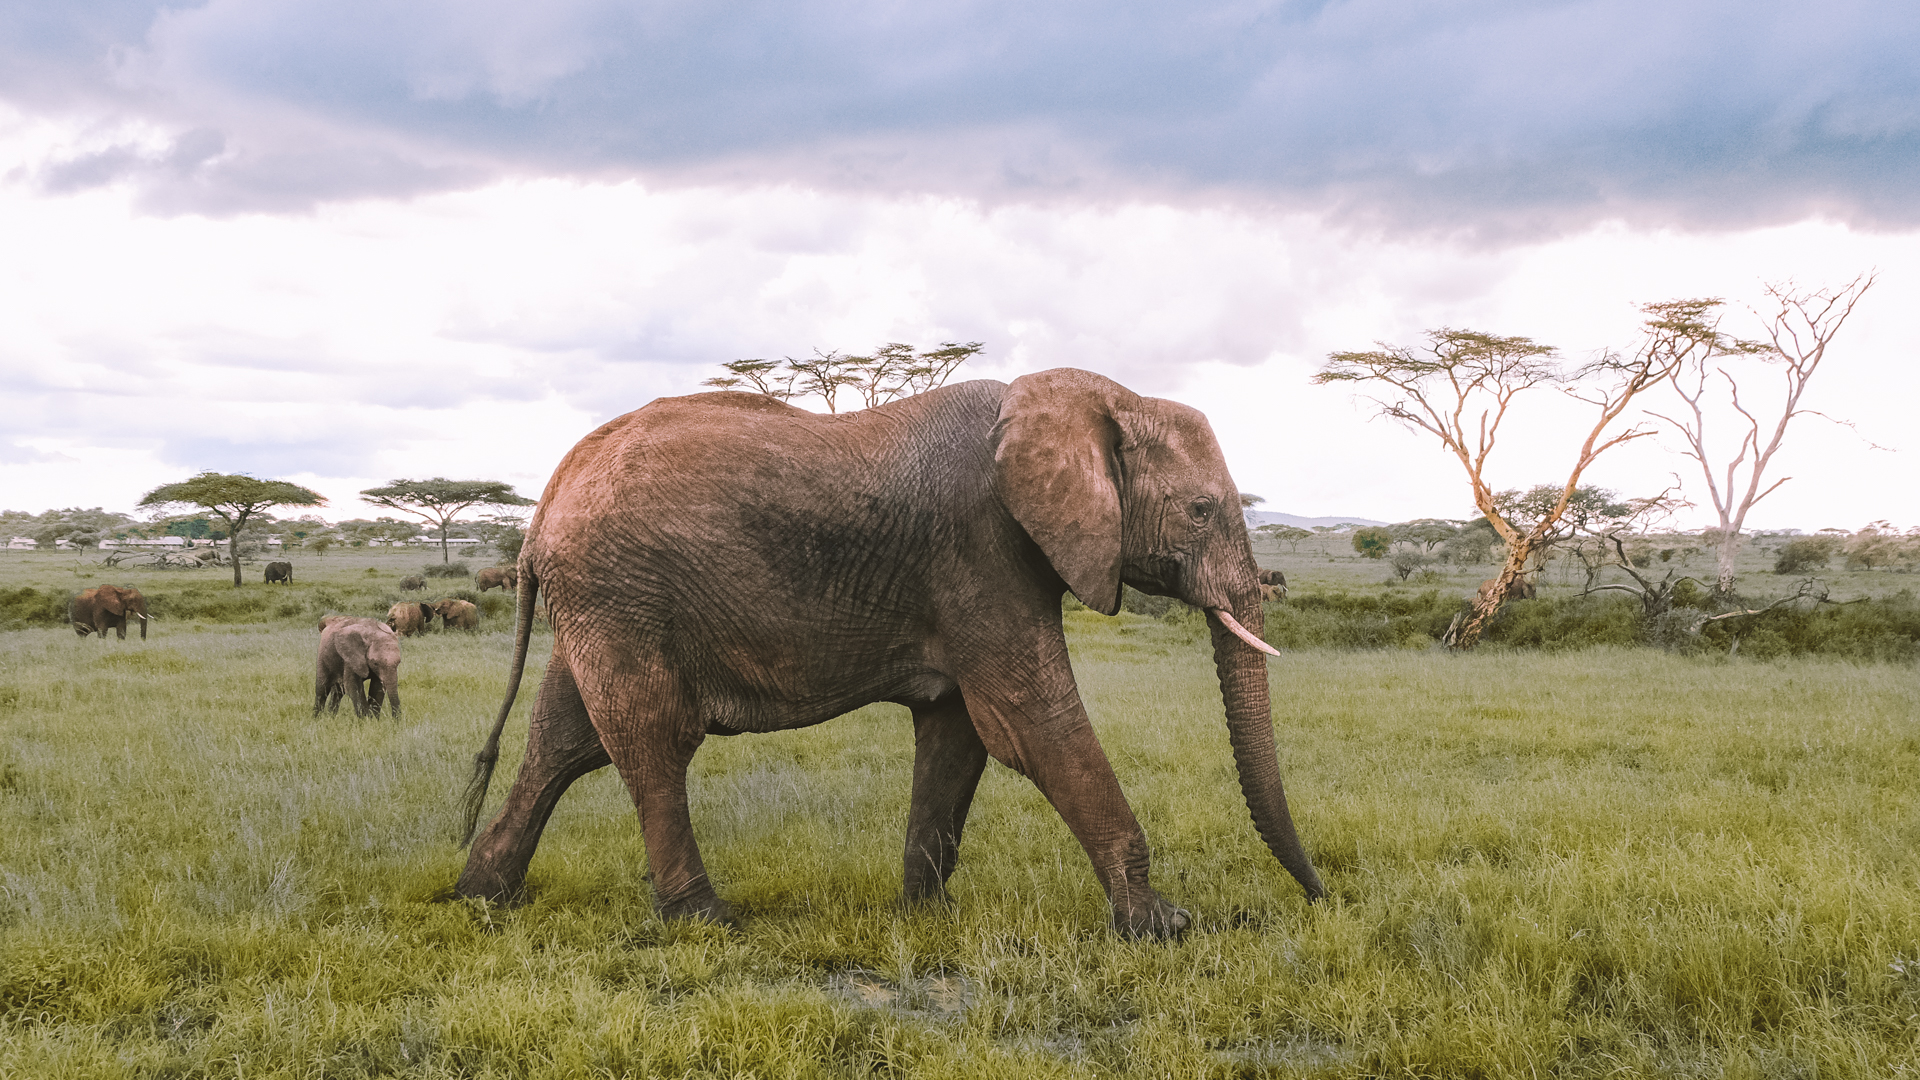 A young female savanna elephant checking us out in the Serengeti National Park, Tanzania